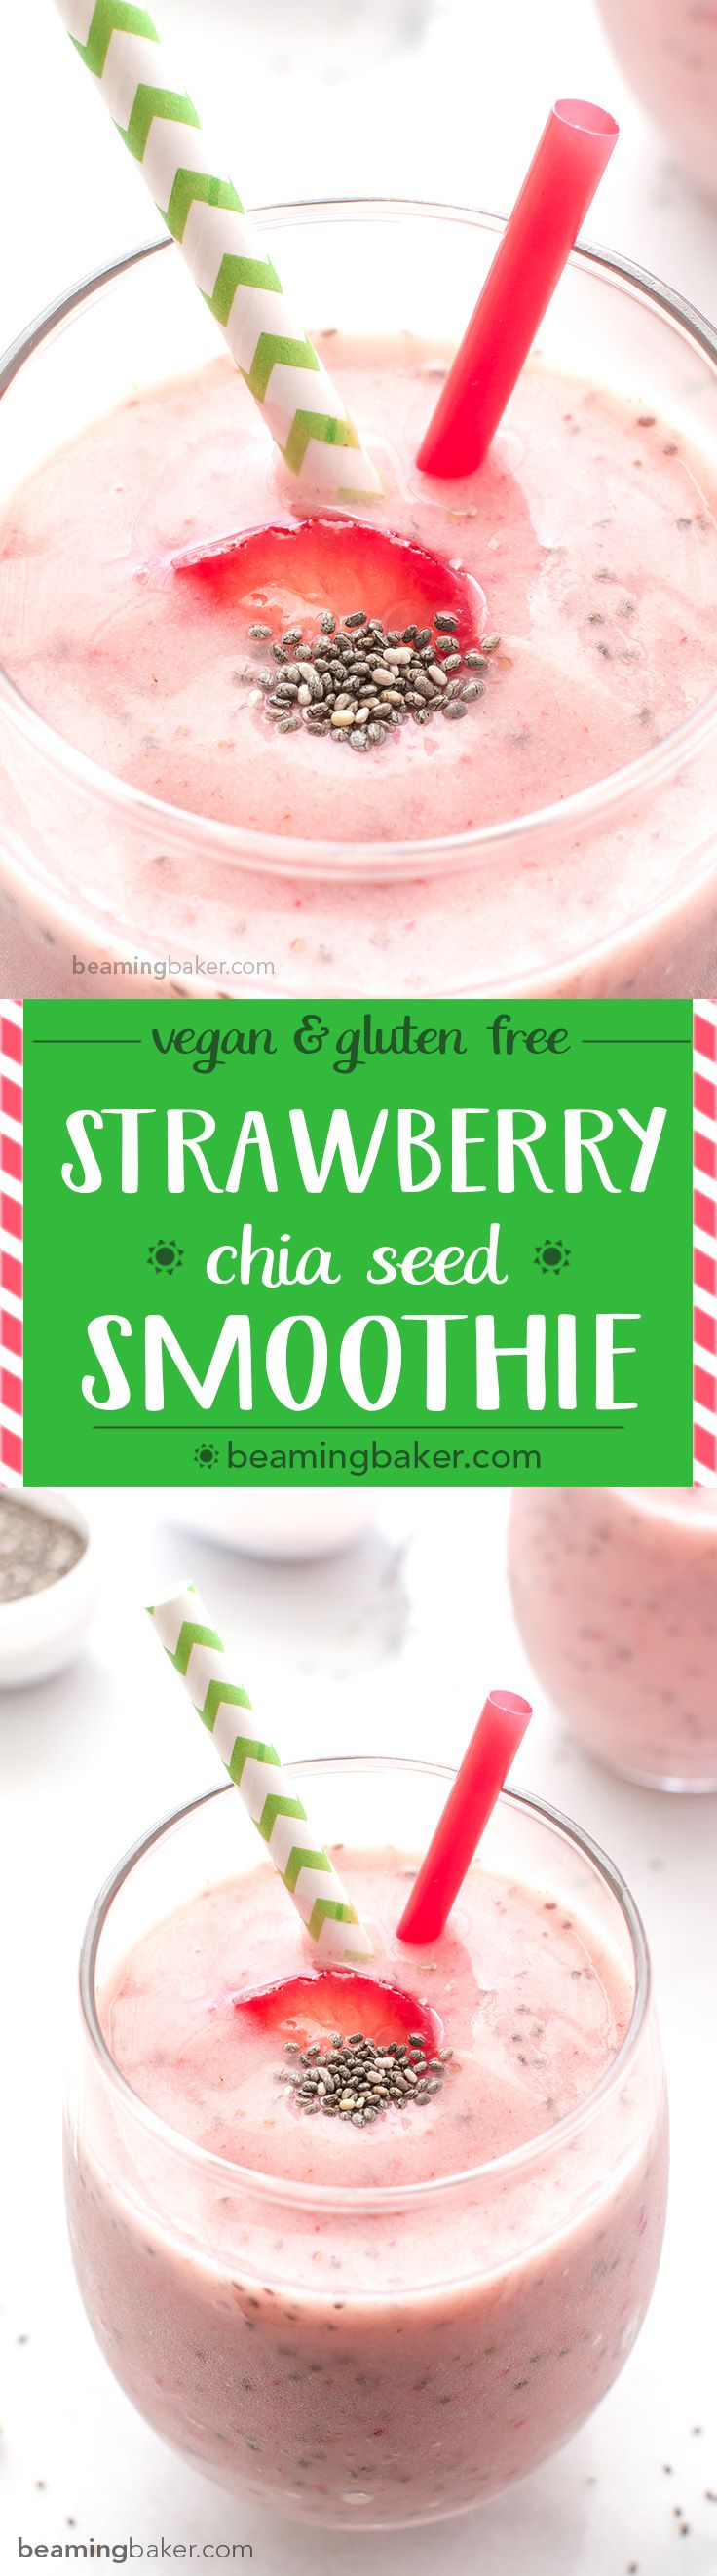 Strawberry Chia Seed Smoothie (V+GF): A cool, refreshing and super thick strawberry smoothie that tastes just like a strawberry fruit popsicle! BeamingBaker.com #Vegan #GlutenFree